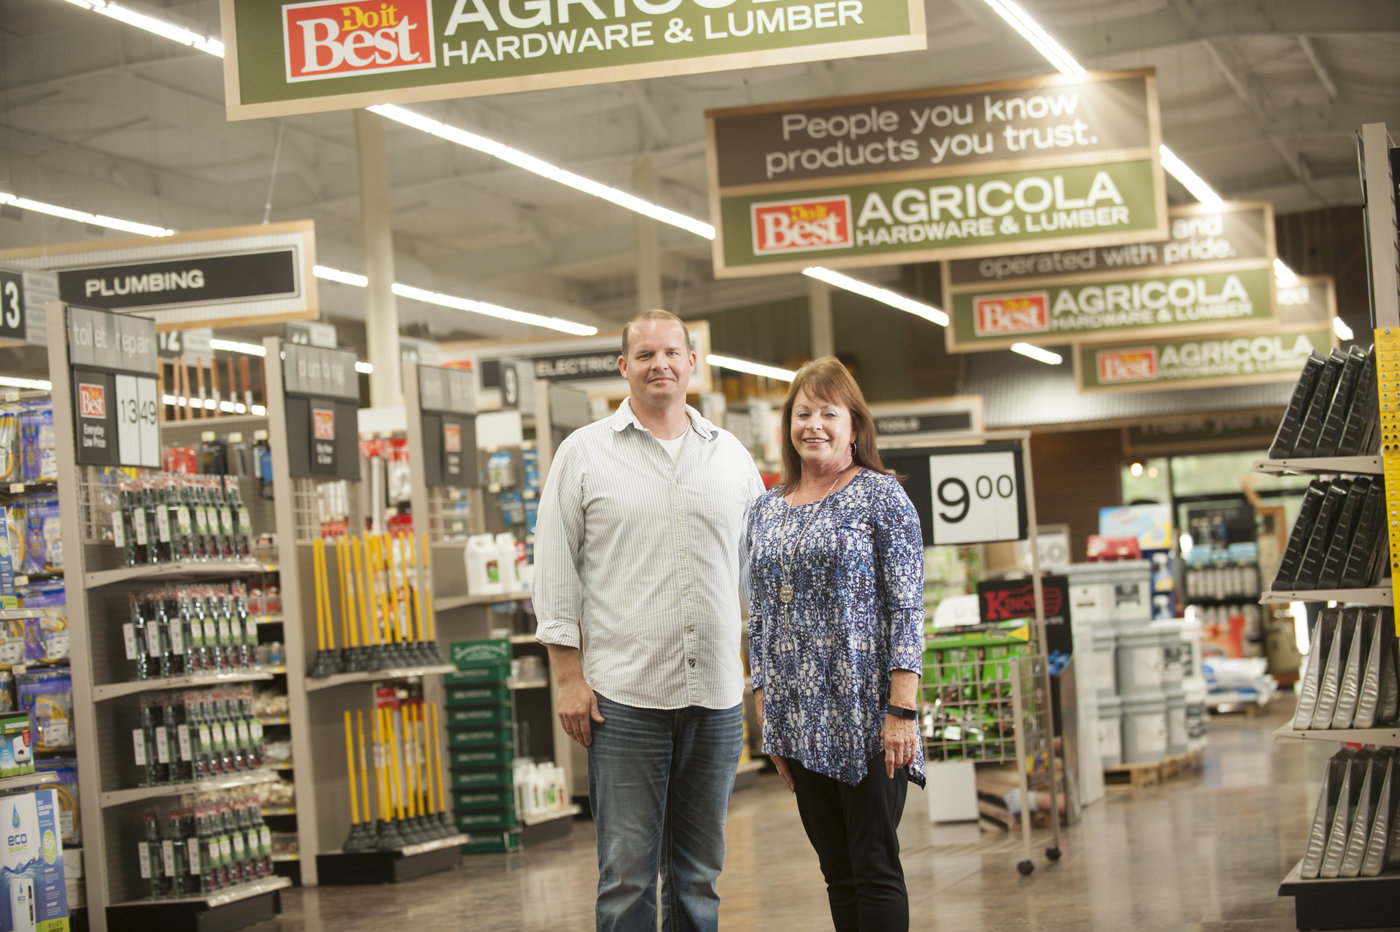 Elliott and Brenda Massey nearly tripled the size of their retail space when they opened a new Agricola Hardware & Lumber store in Lucedale, Miss., in 2016.